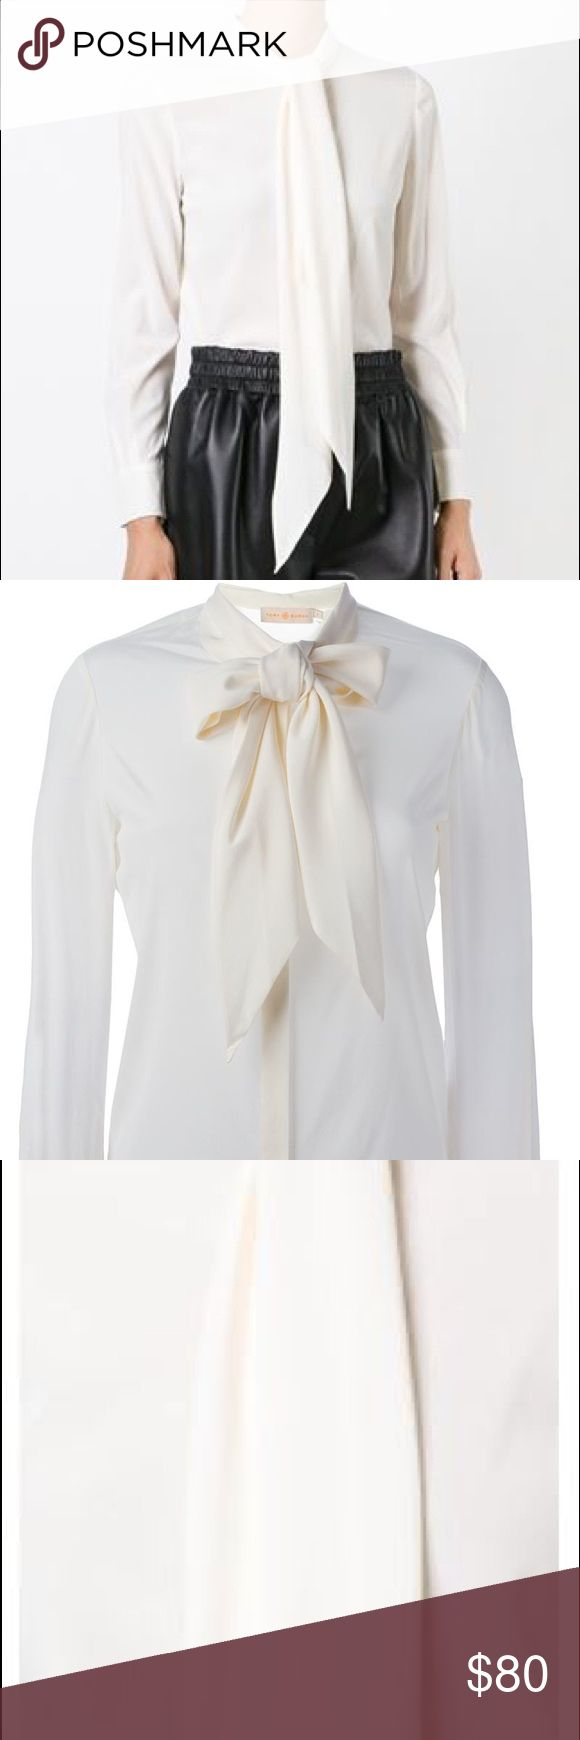 Tory Burch Pussy Bow Top White silk pussy bow shirt from Tory Burch. Tory Burch Tops Blouses